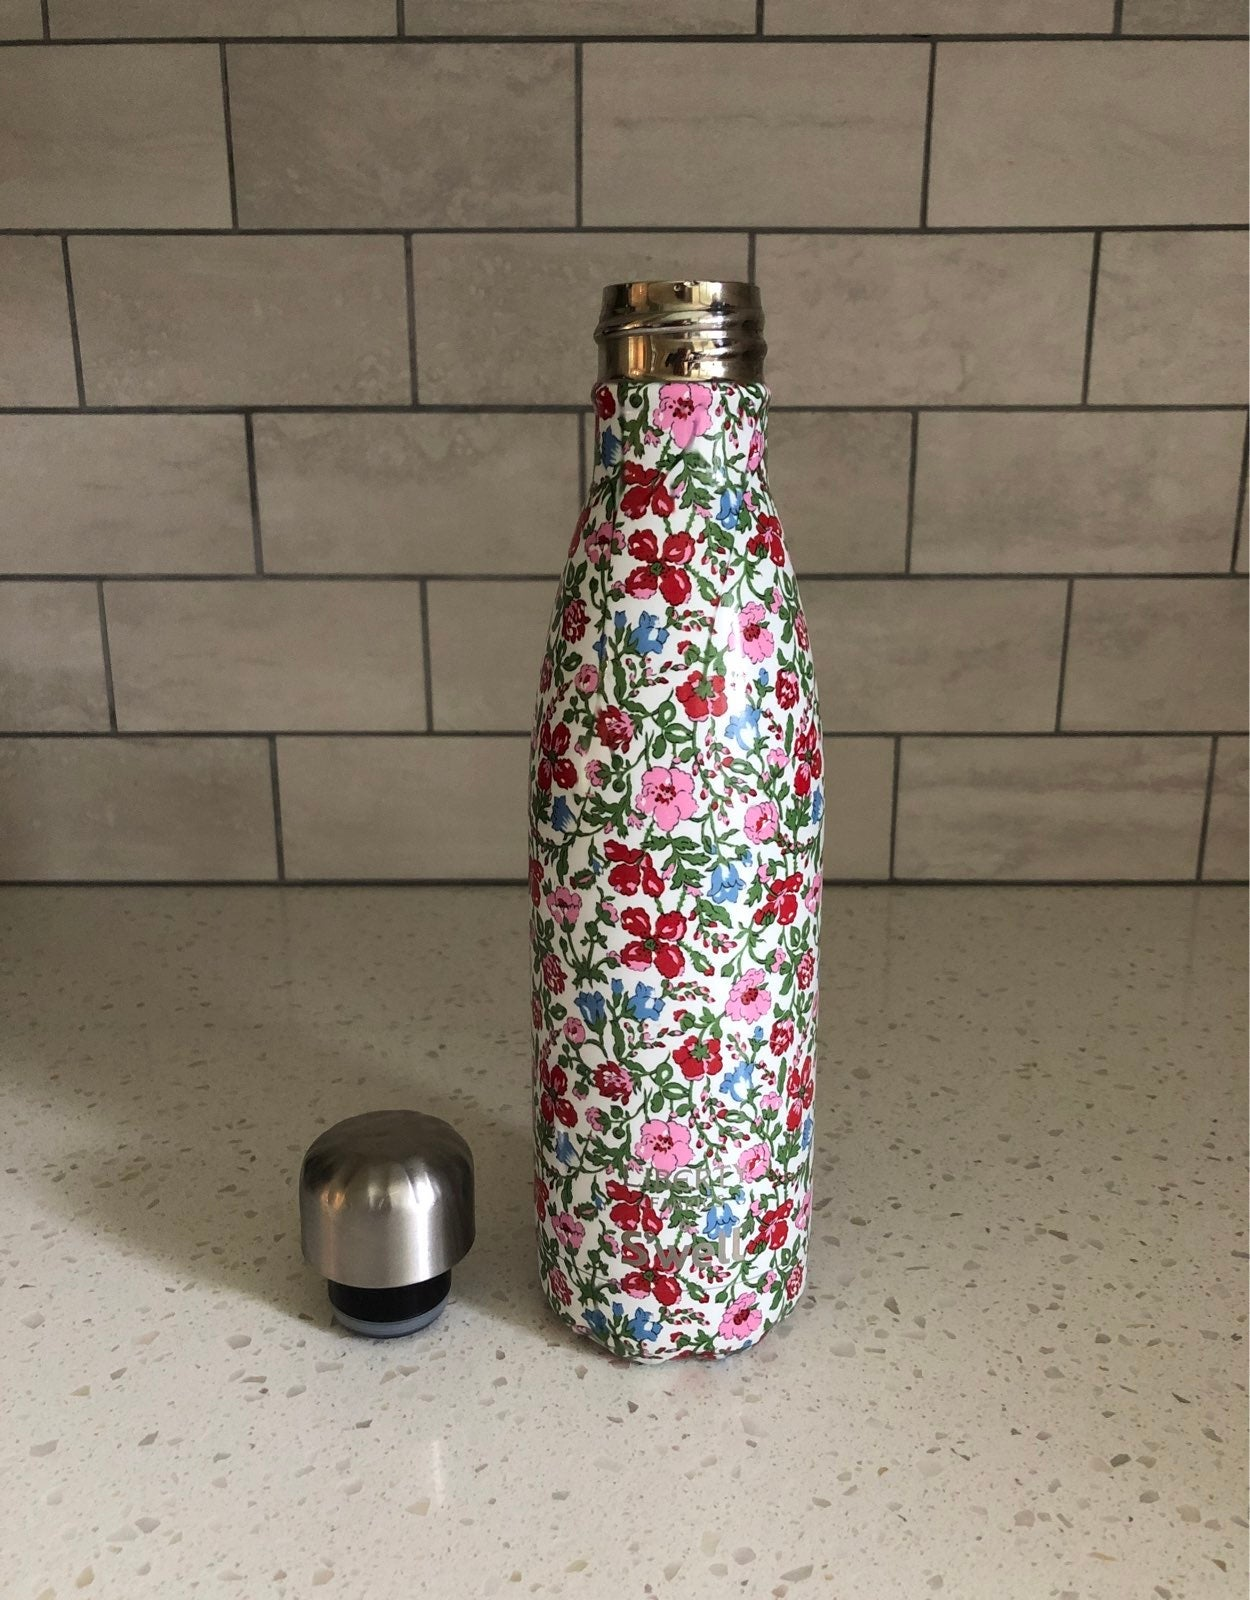 Swell Water bottle 17oz floral print